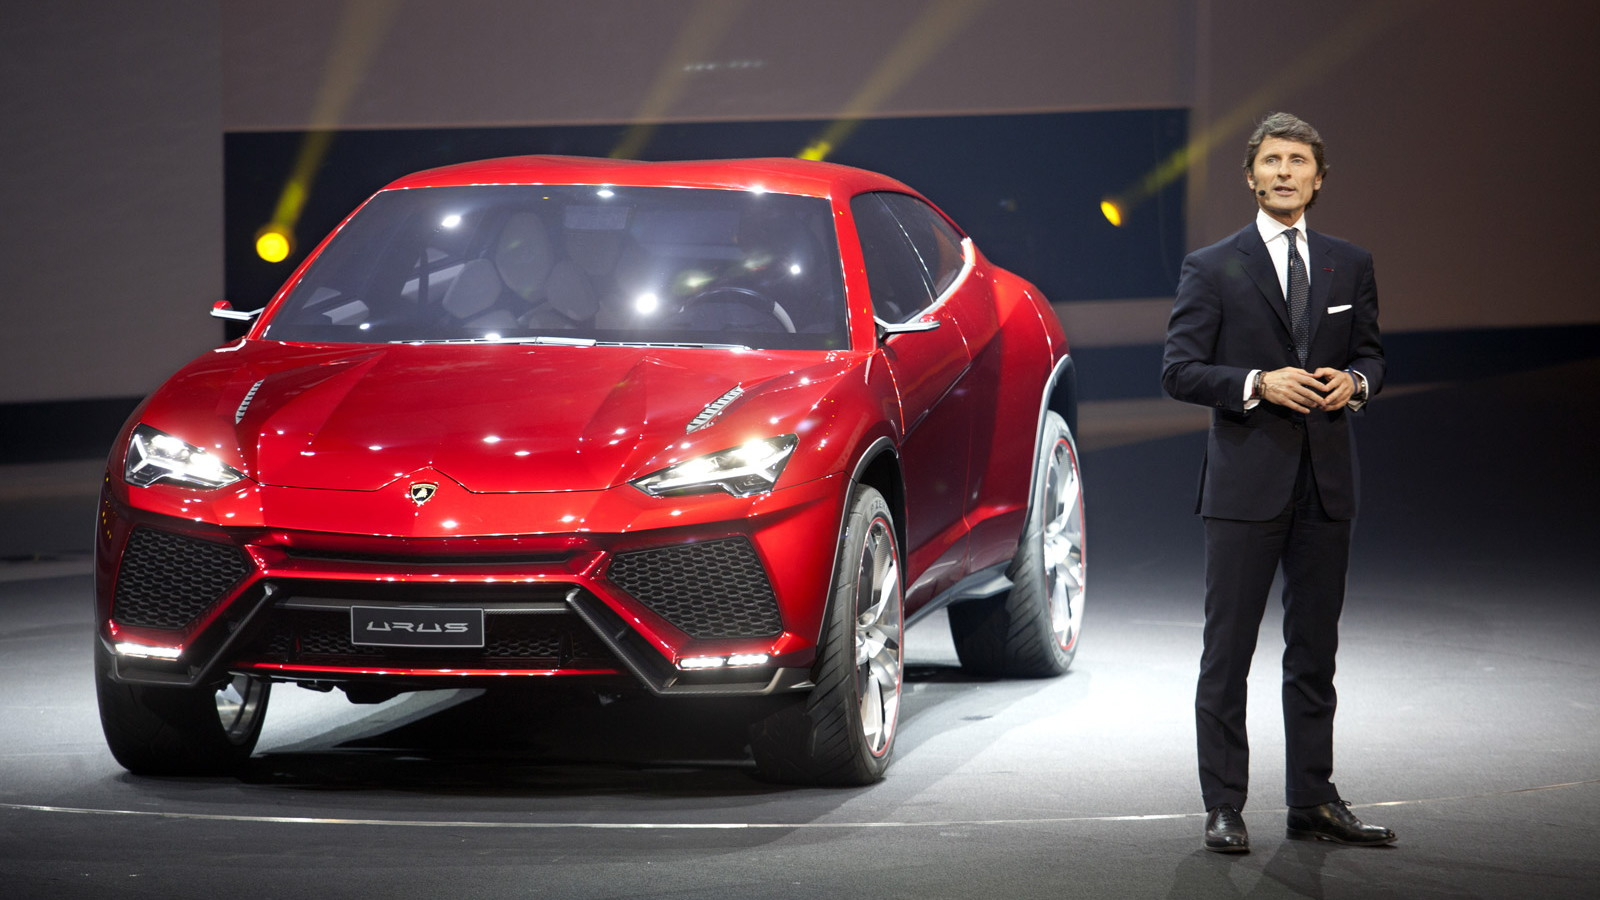 Lamborghini CEO Stephan Winkelmann and the 2012 Urus SUV concept